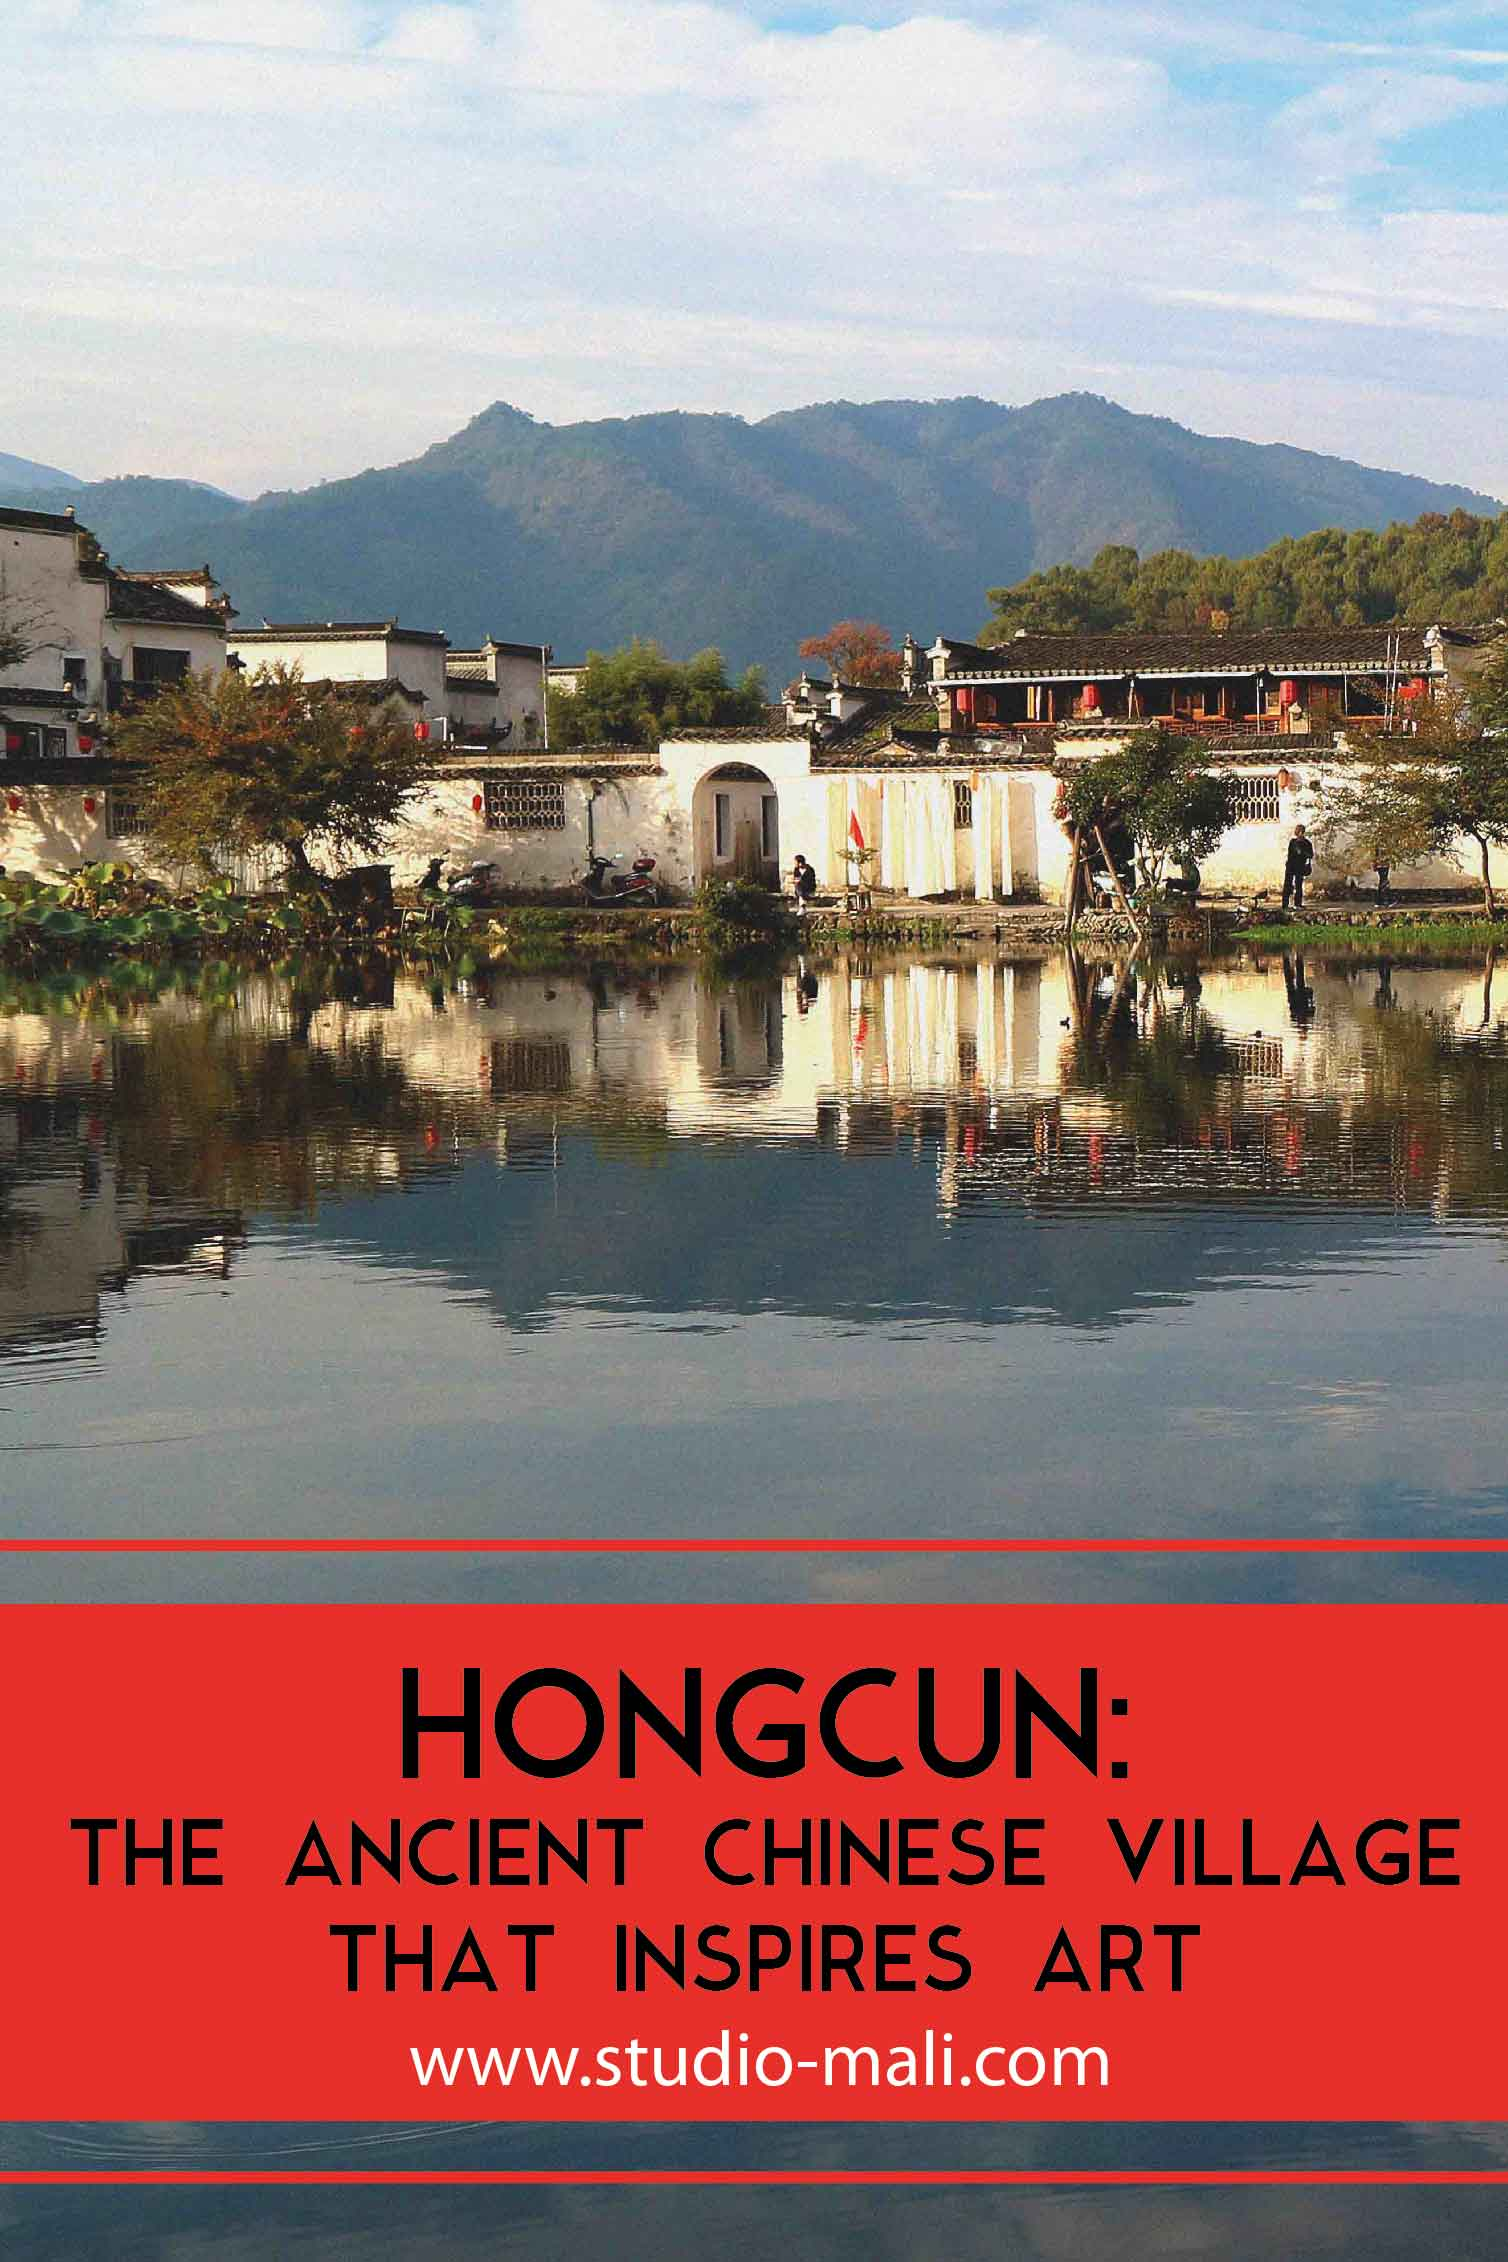 hongcun: the ancient chinese village that inspires art-07.jpg